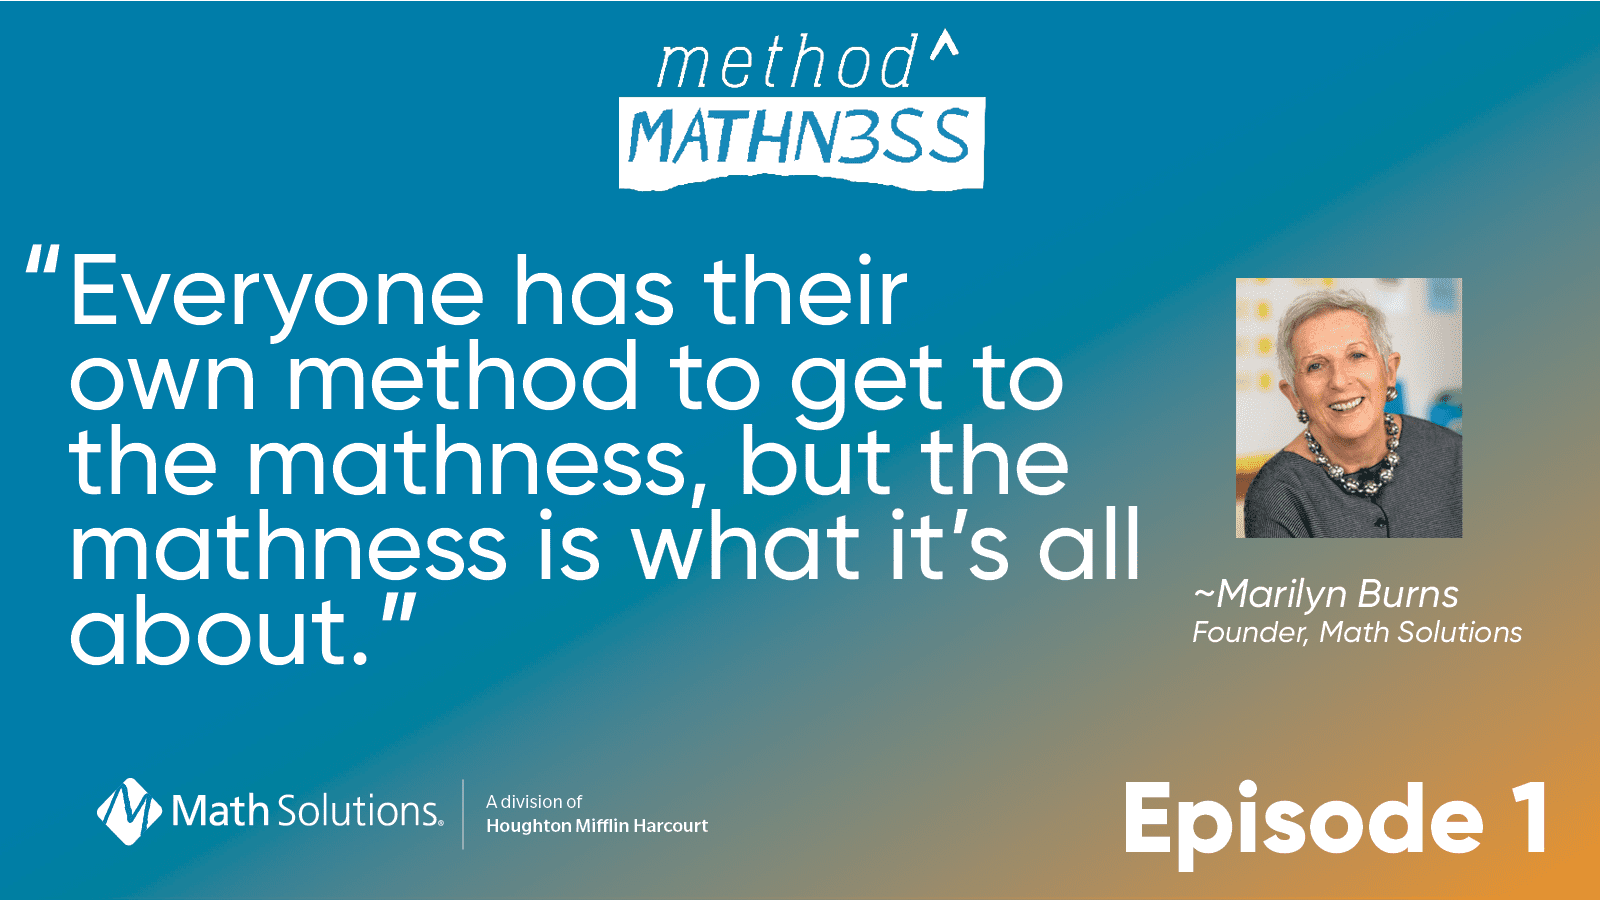 Everyone has their own method to get to the mathness, but the mathness is what it's all about.